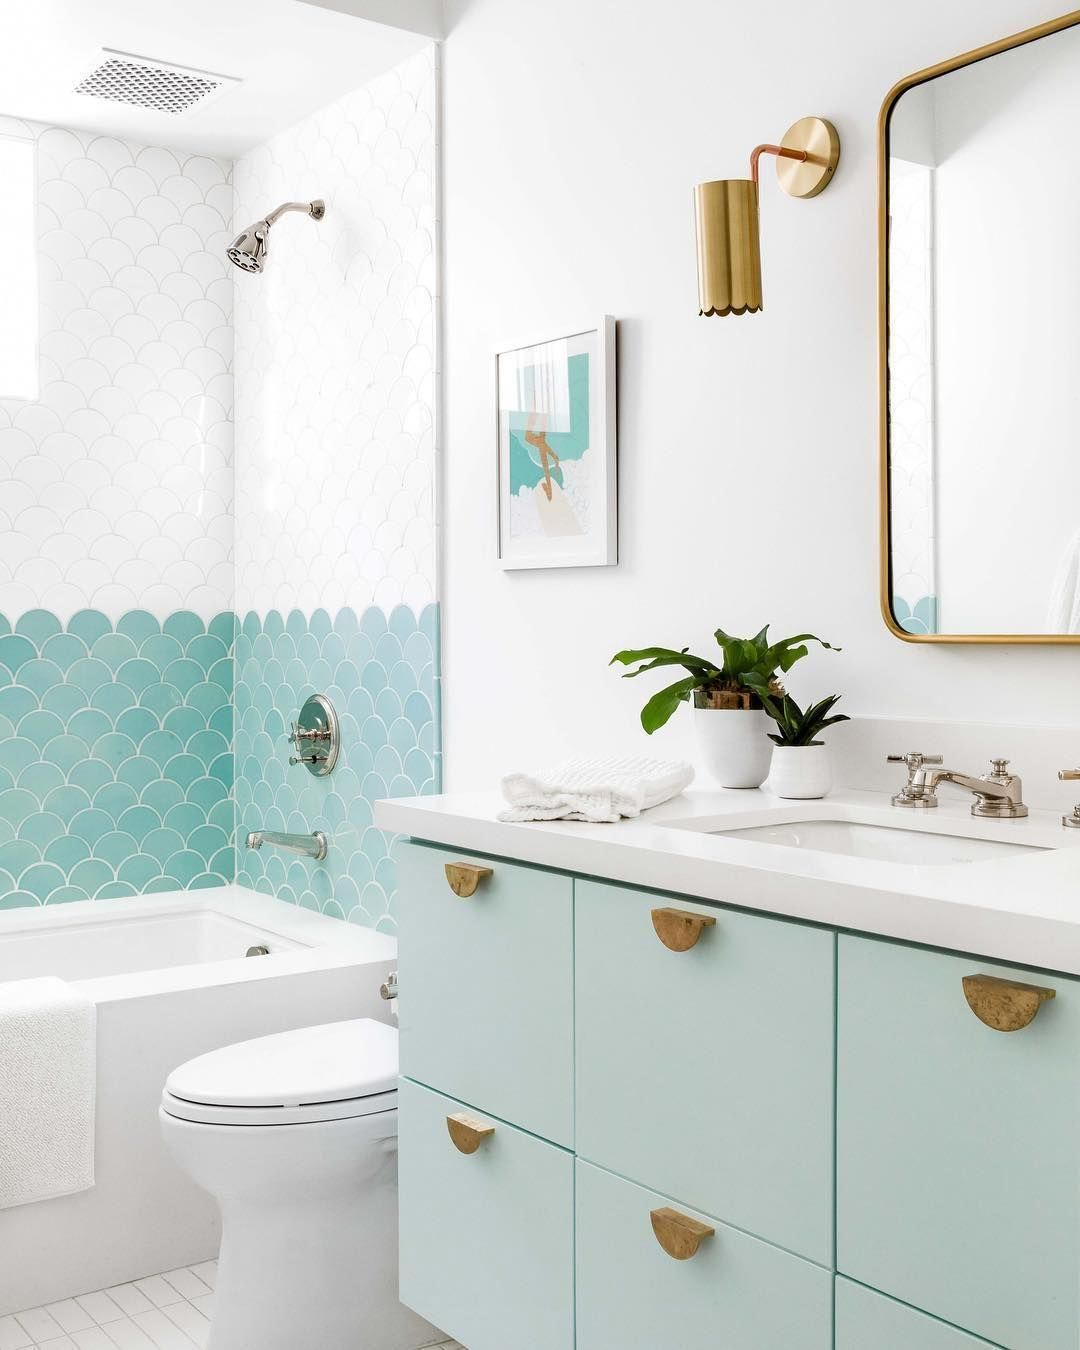 How fun is this bathroom? Yes, you can never go wrong with white, but the scalloped blue tile and drawer pulls give this room so much personality. We also love that it's a perfect match for our Bath Stone in Bora Bora Blue. #dorai #bathstone #bathroom #tiling #cabinets #goldaccessories #accessories #gold #blue #bath #doraihome #bathroomwallpaper